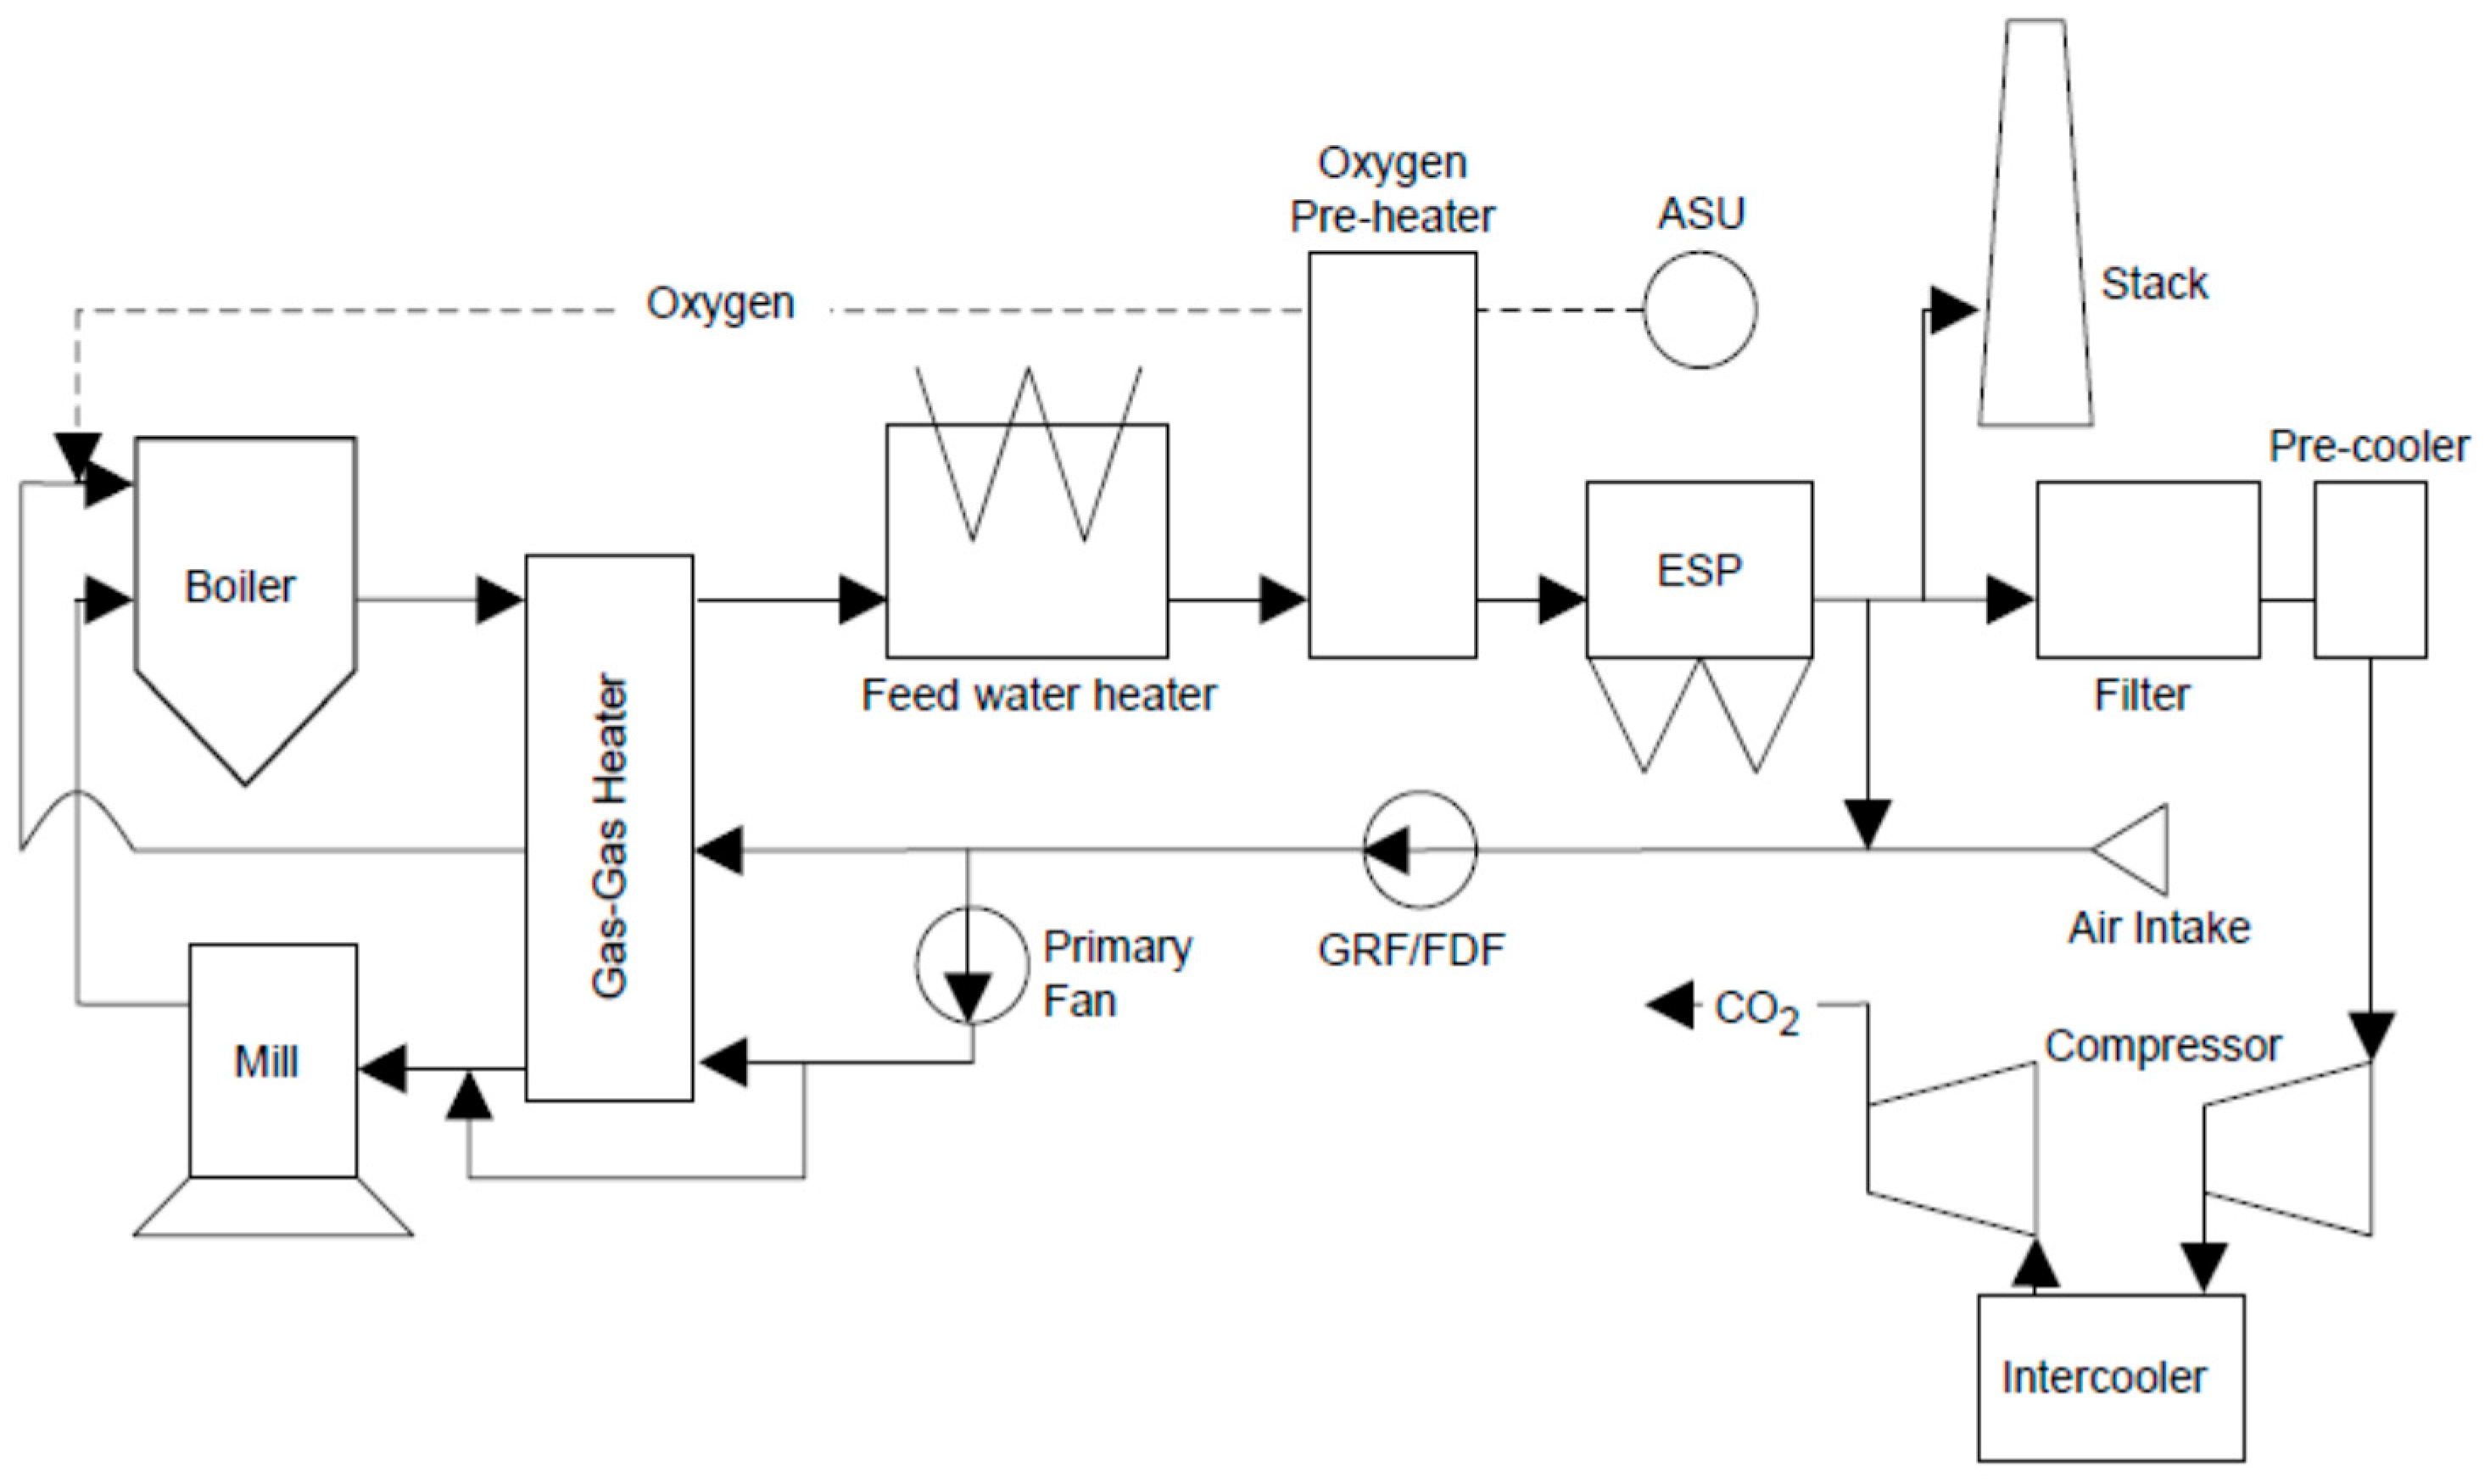 Oil Fired Power Plant Diagram Hrsg Block Drawing Wire Gas Schematic Energies Free Full Text The Efficiency Improvement By Combining